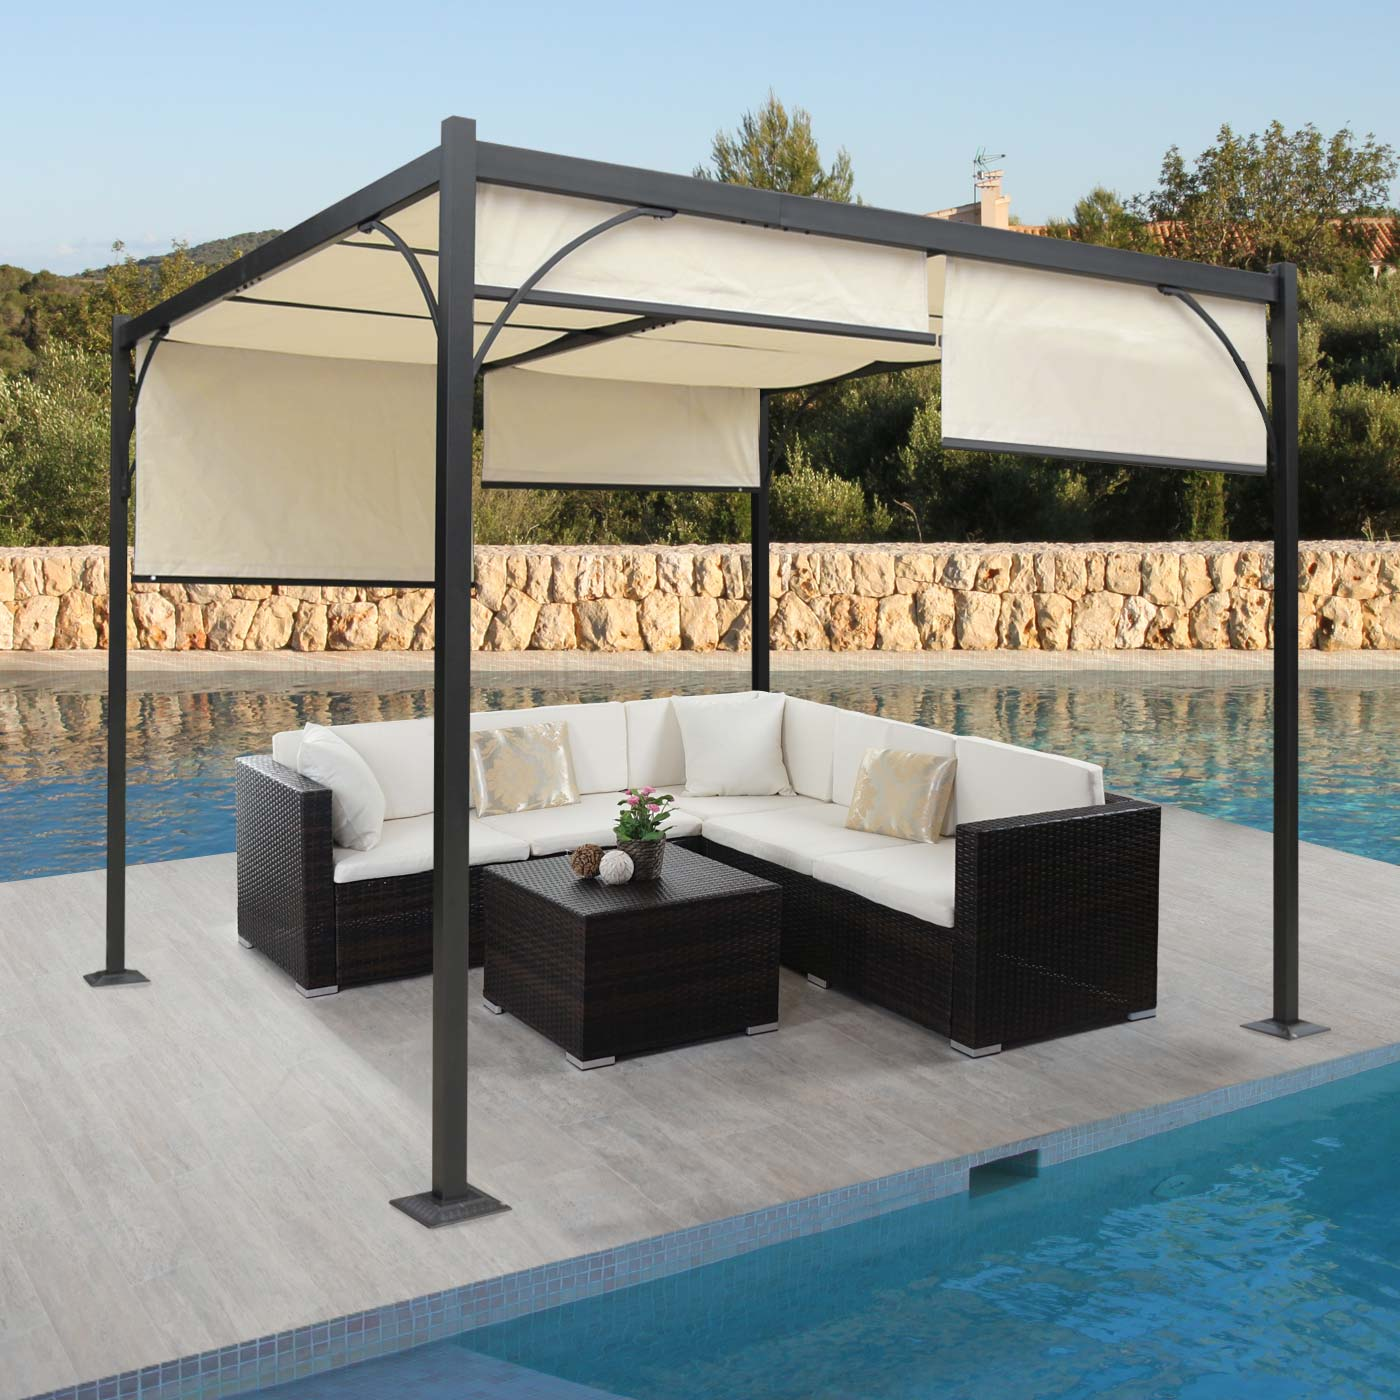 pergola granada garten pavillon terrassen berdachung. Black Bedroom Furniture Sets. Home Design Ideas